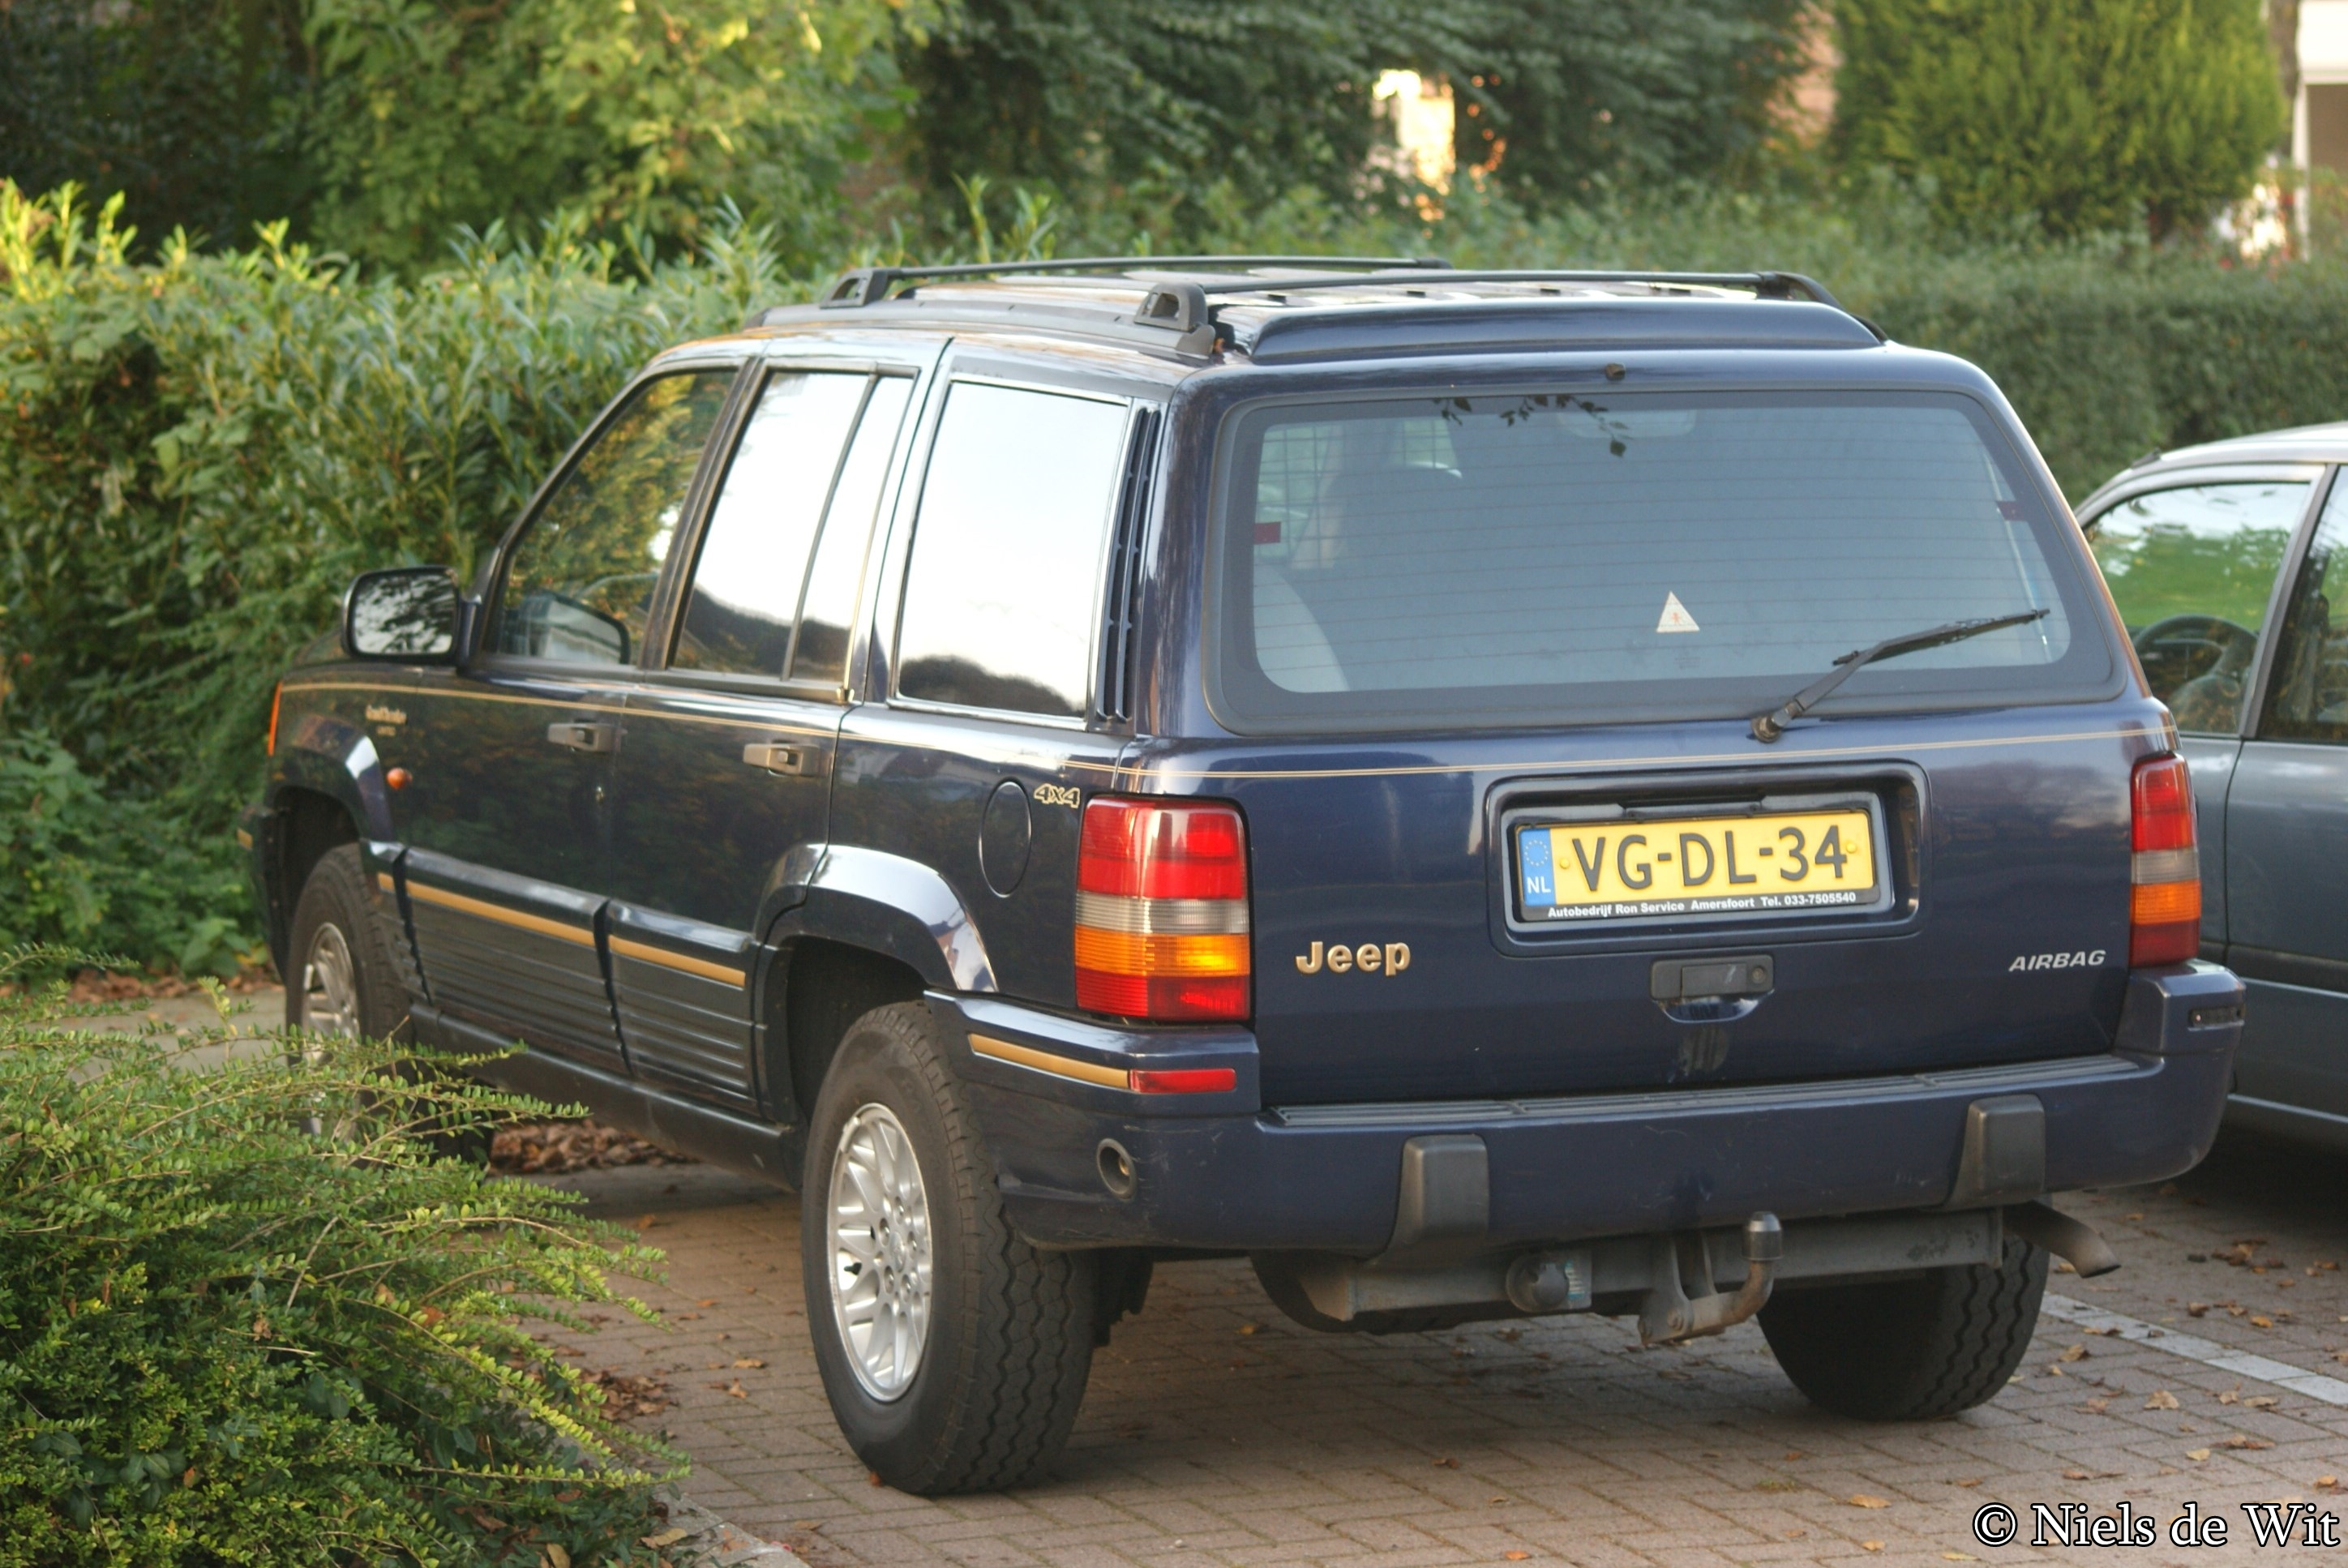 File:1995 Jeep Grand Cherokee 4.0i LTD Commercial (15106987273)